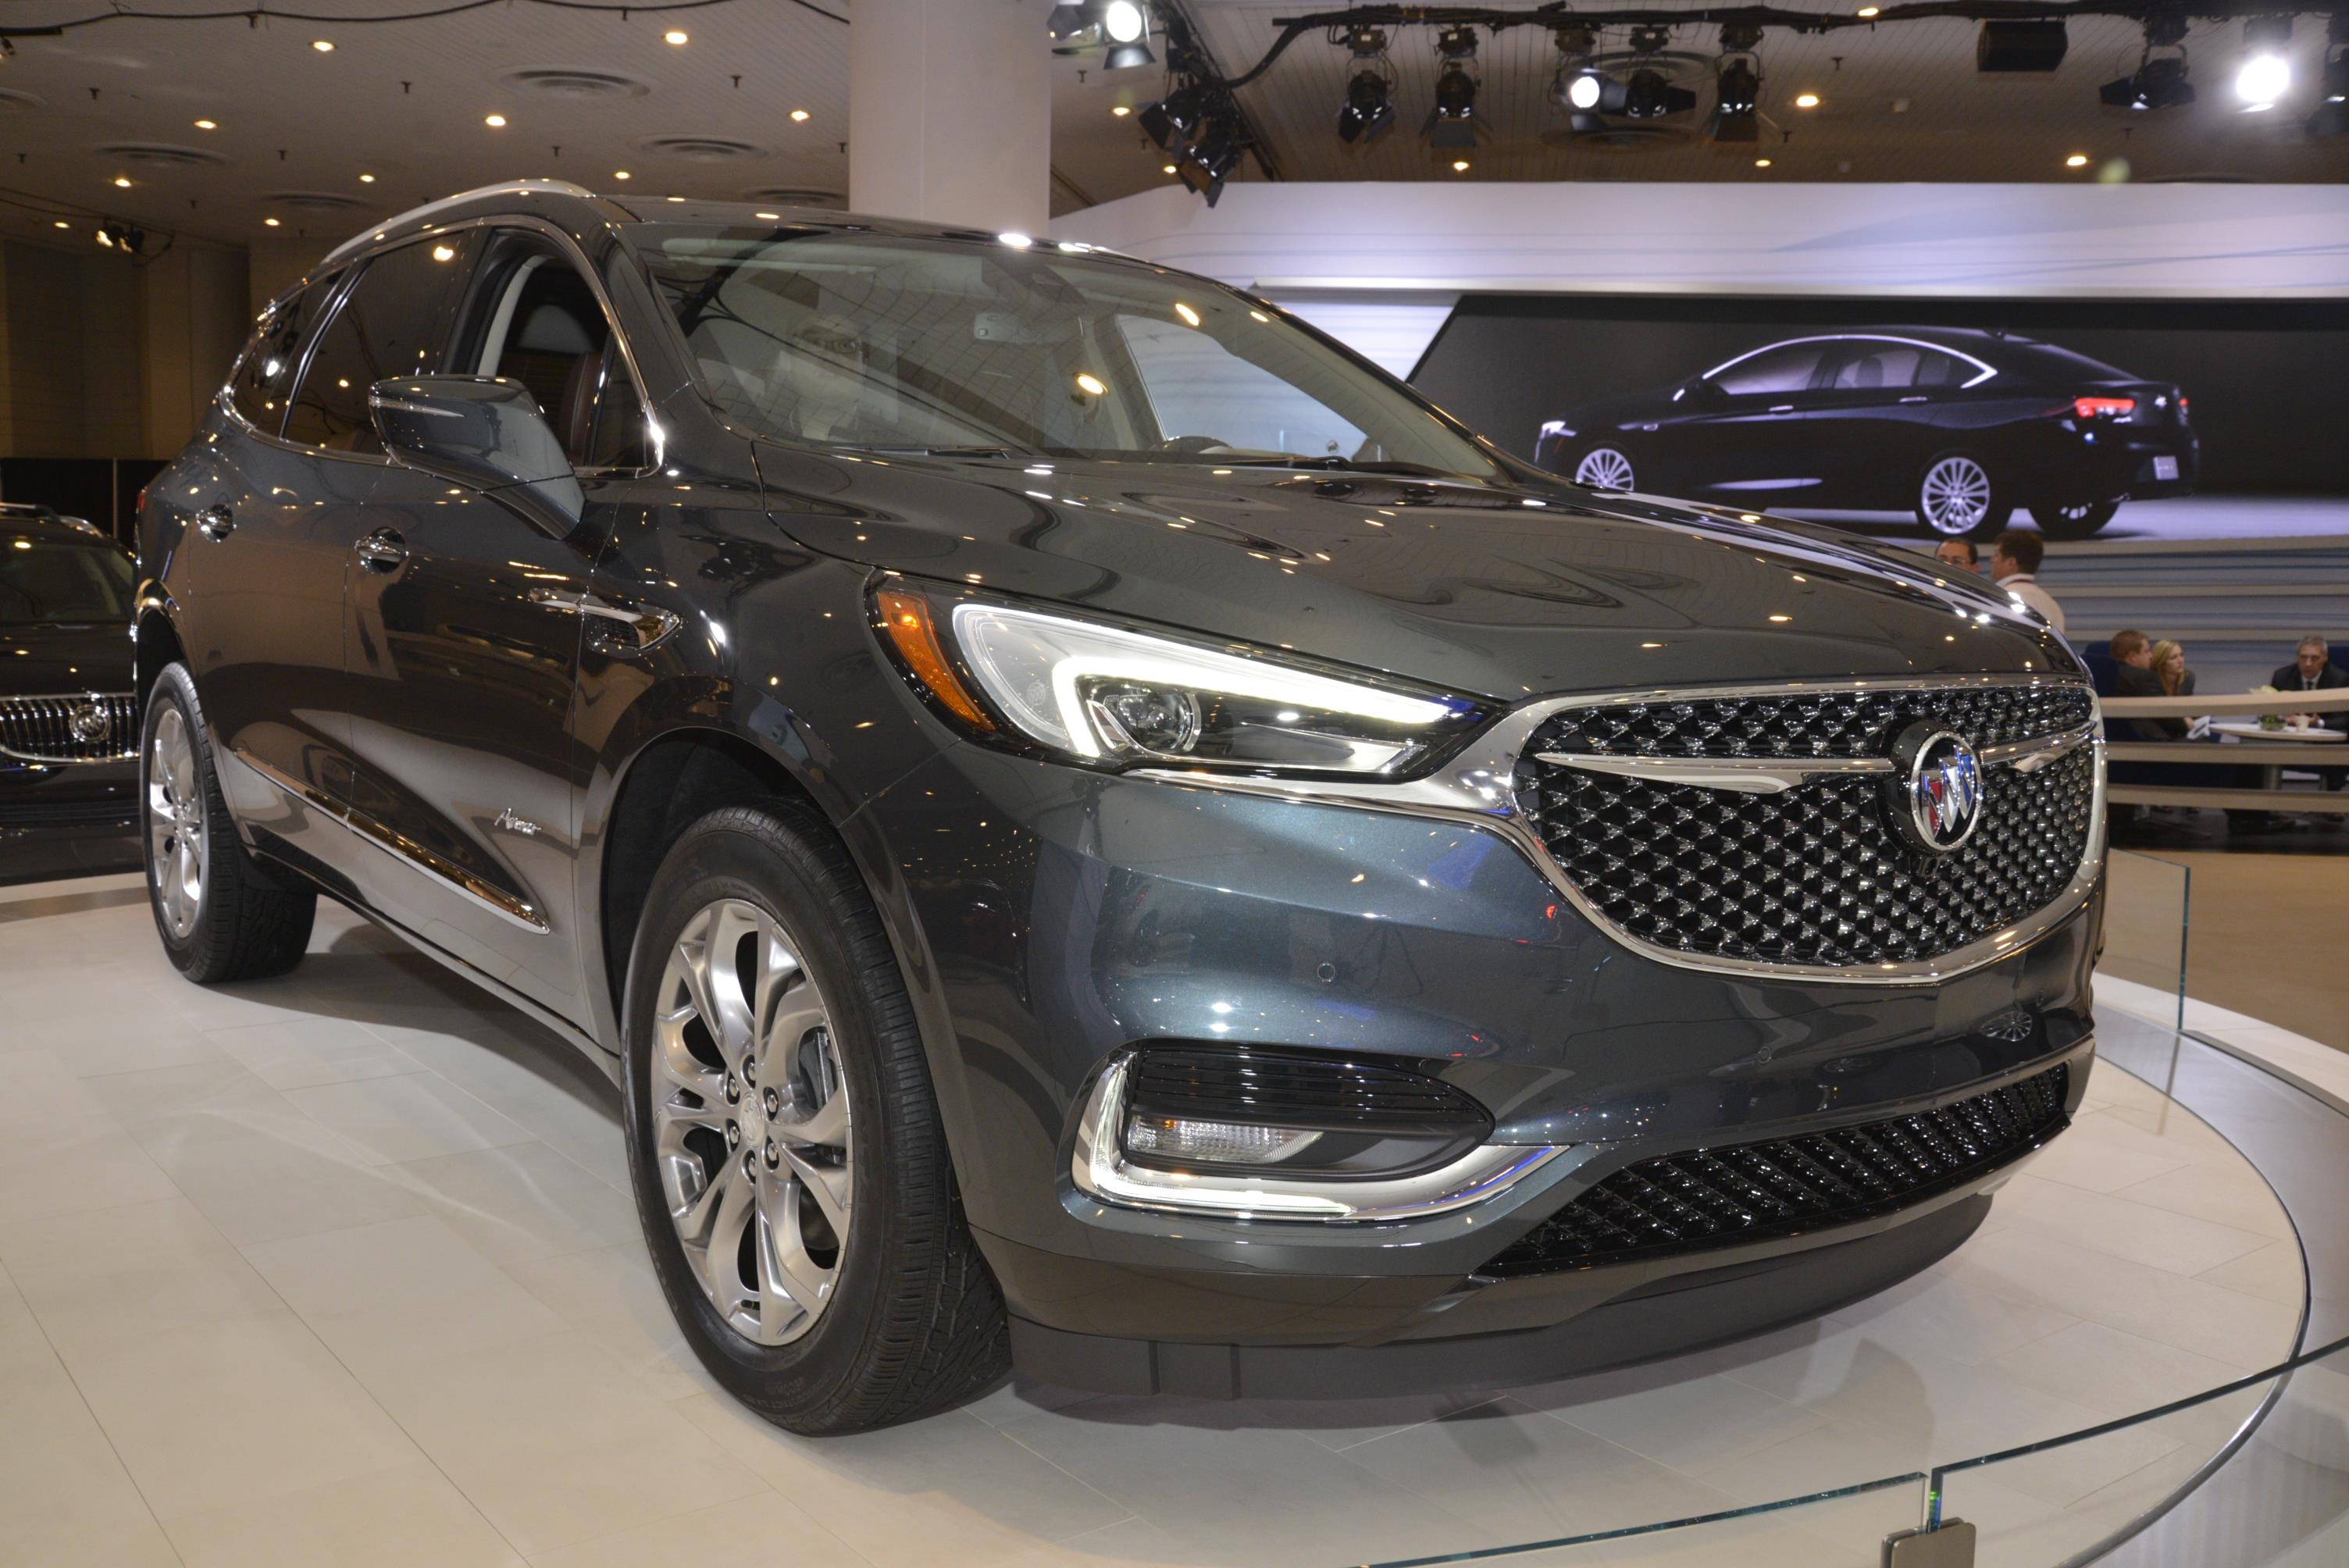 branding natural u crossover buick s place takes a as cake avenir to second he notch says is plus enclave in most luxury up mats the floor best start selling